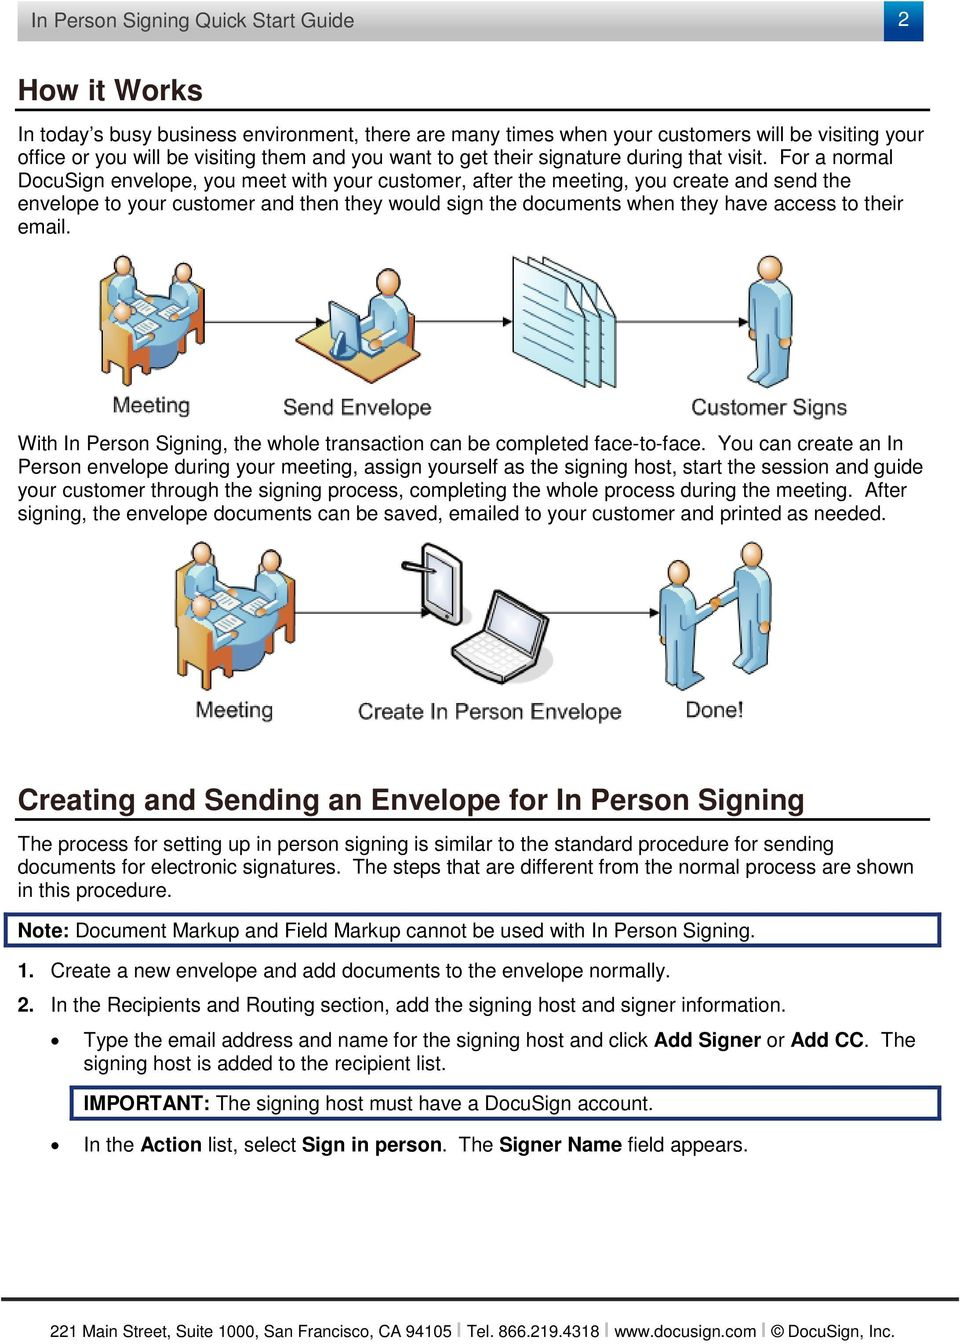 For a normal DocuSign envelope, you meet with your customer, after the meeting, you create and send the envelope to your customer and then they would sign the documents when they have access to their